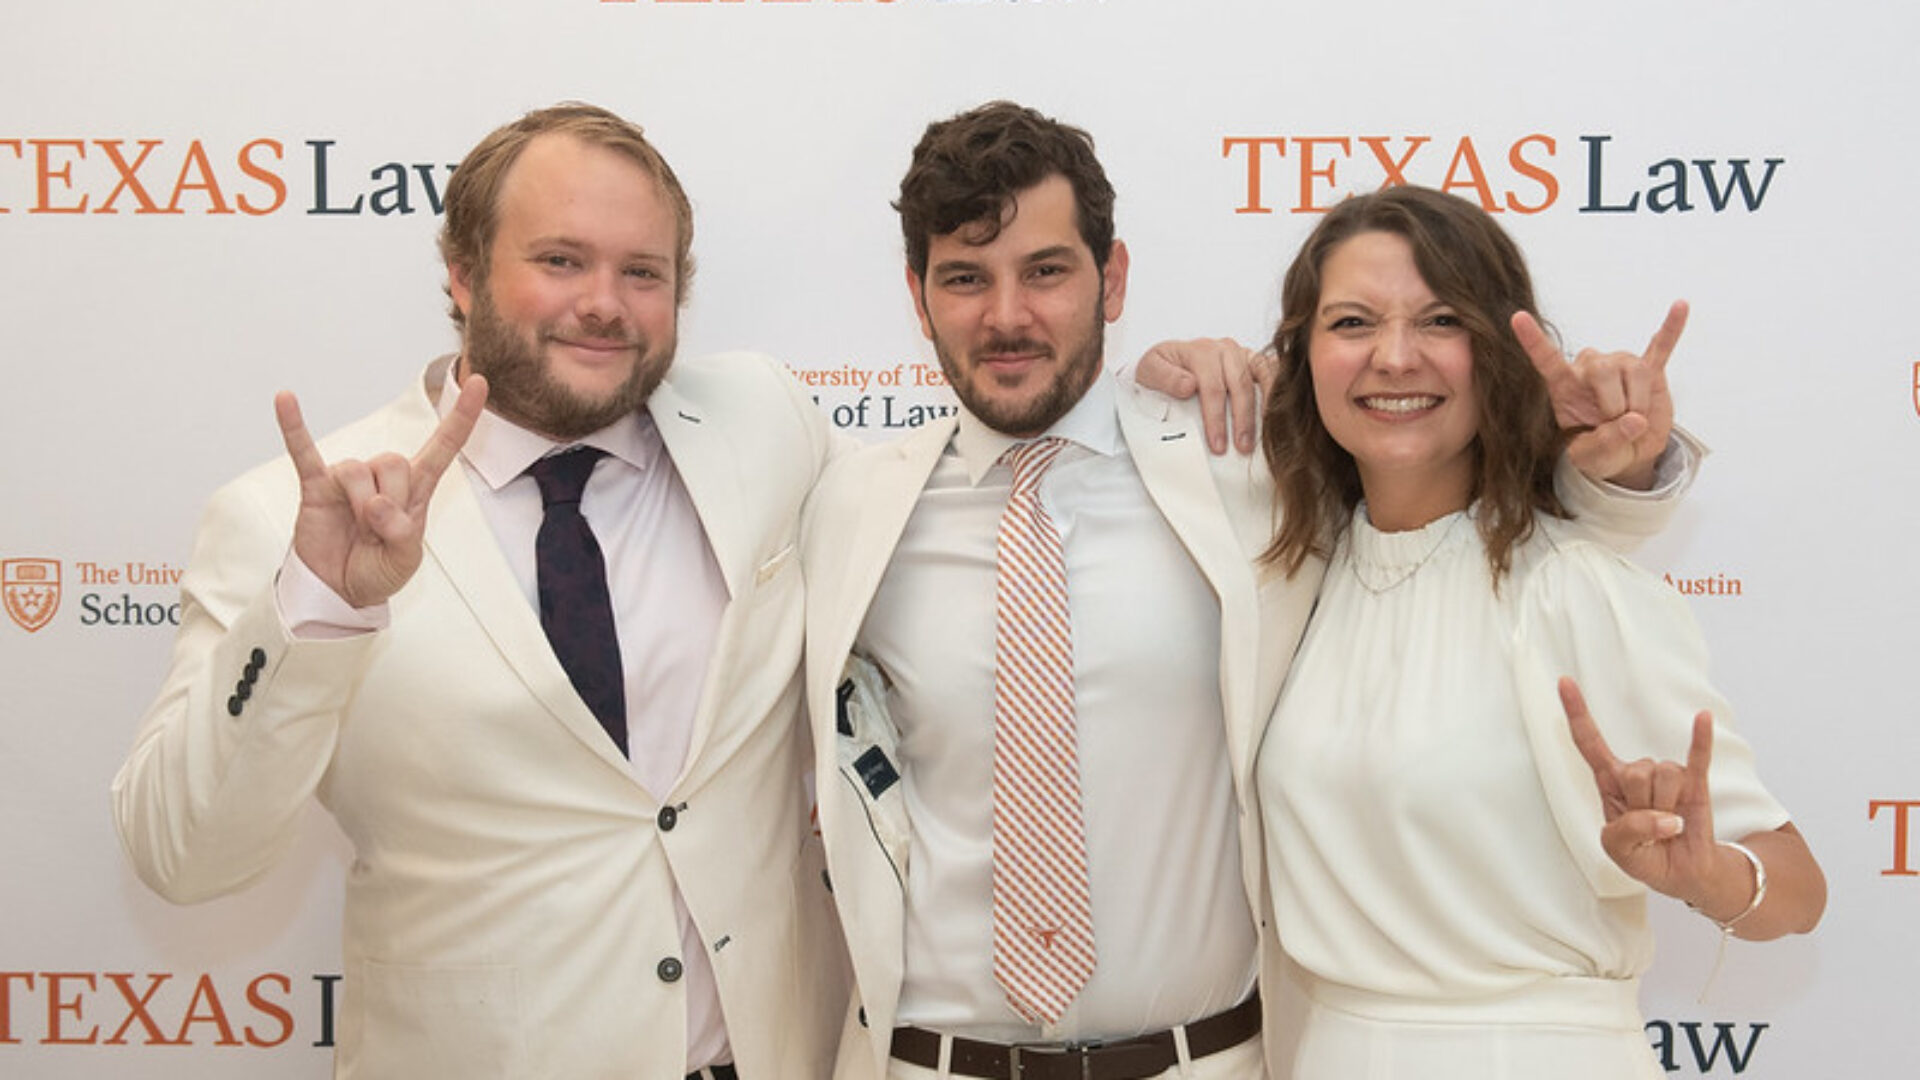 Three graduates wearing white suites in front of a Texas Law banner at the 2021 Sunflower Ceremony